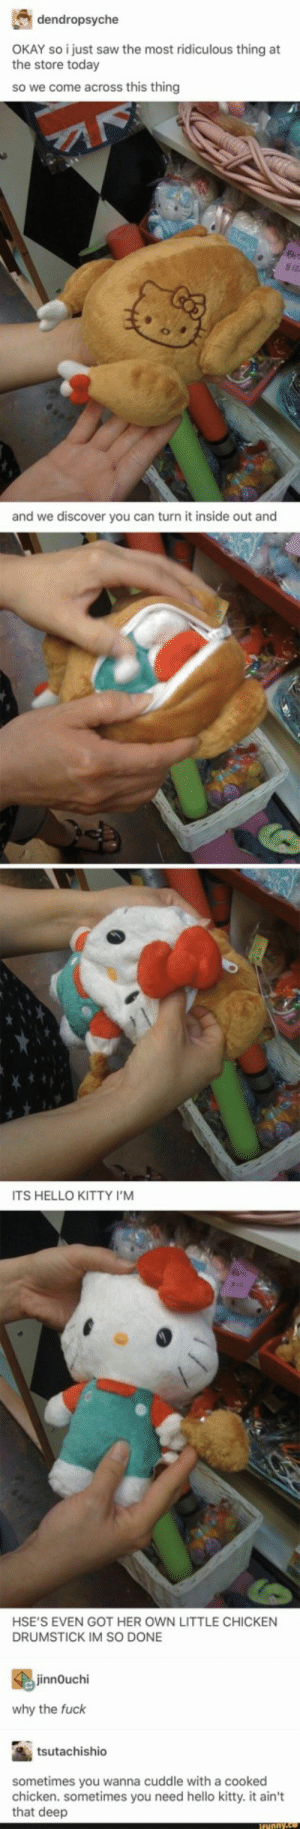 Turned inside out: dendropsyche  the store torstysaw the most ridiculous thing at  the store today  so we come across this thing  and we discover you can turn it inside out and  ITS HELLO KITTY I'M  HSE'S EVEN GOT HER OWN LITTLE CHICKEN  DRUMSTICK IM SO DONE  innOuchi  why the fuck  tsutachishio  sometimes you wanna cuddle with a cooked  chicken. sometimes you need hello kitty. it ain't  that deep Turned inside out